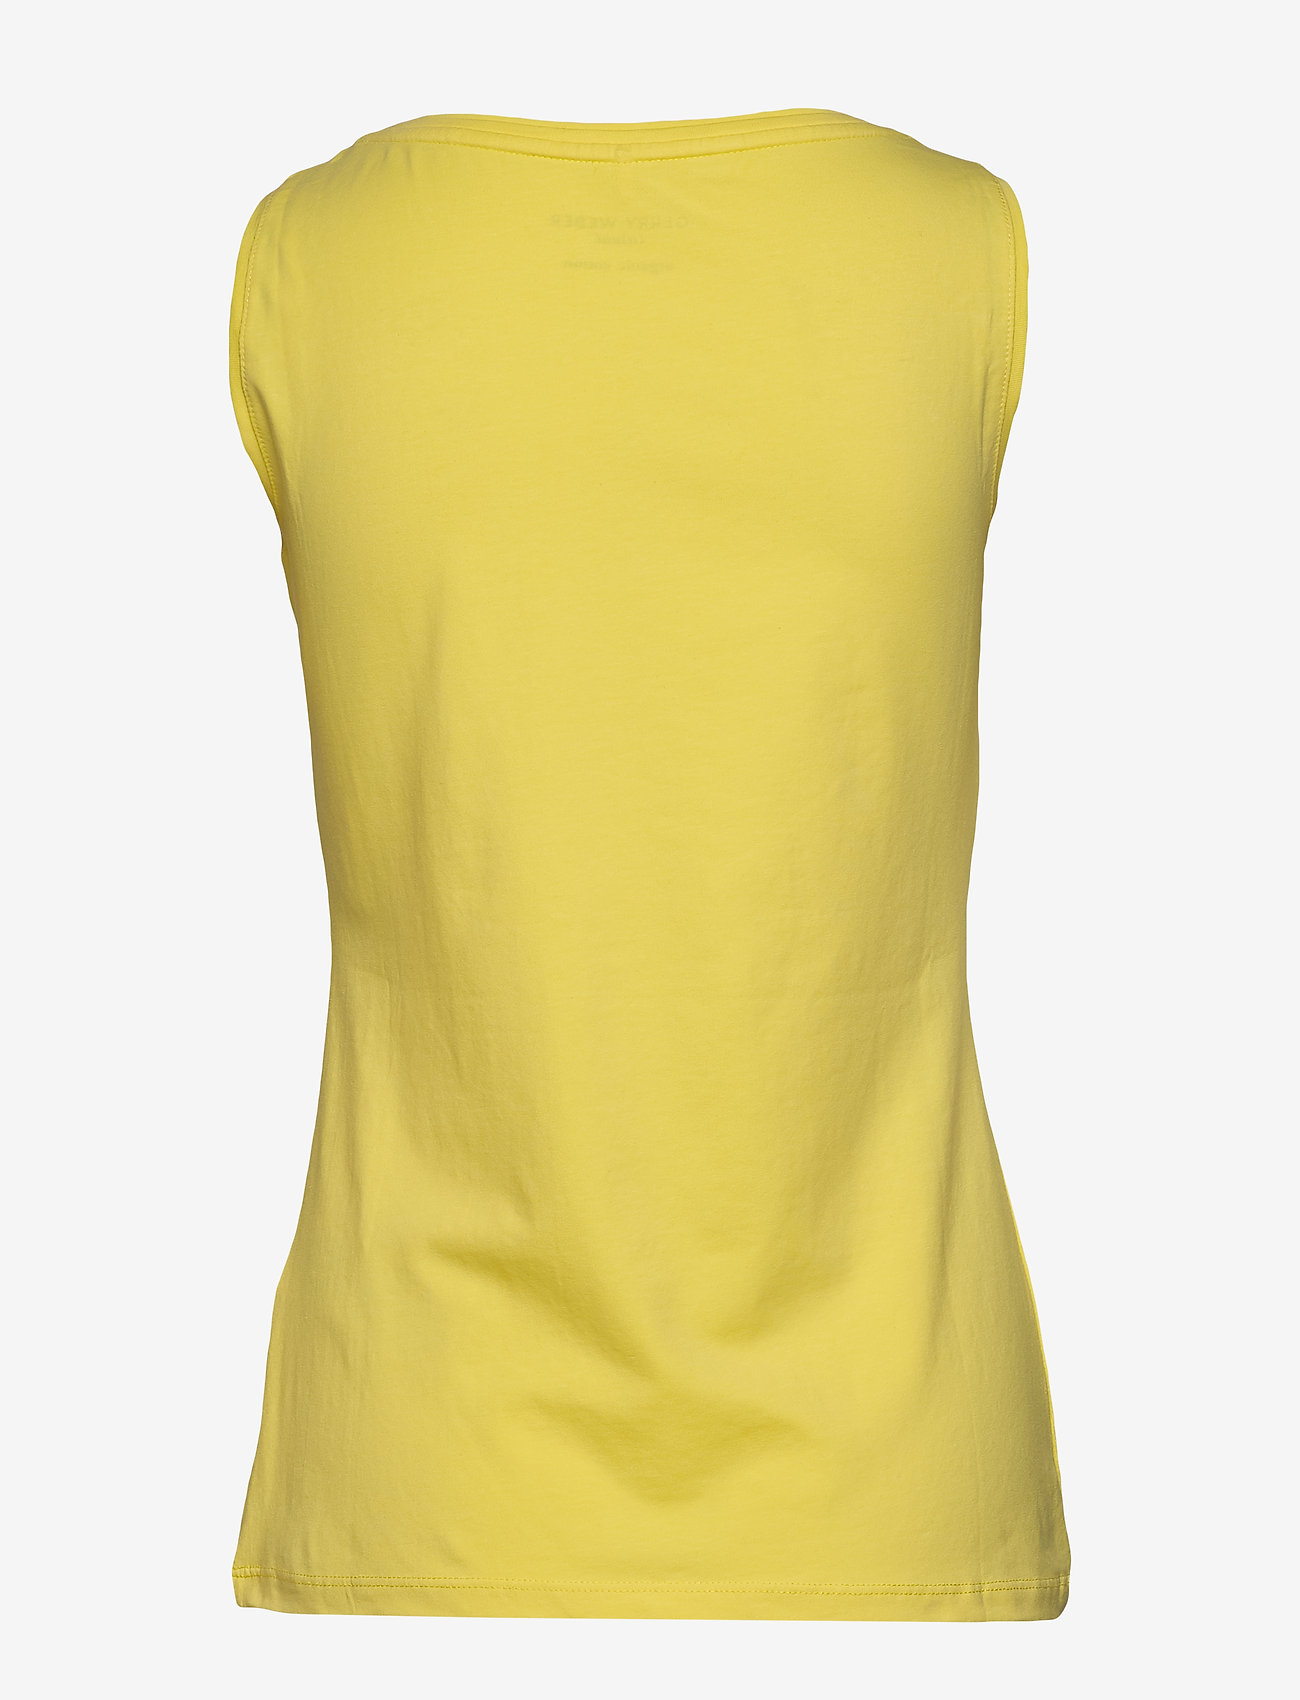 Top Knitted Fabric (Citrus) (174.30 kr) - Gerry Weber Edition